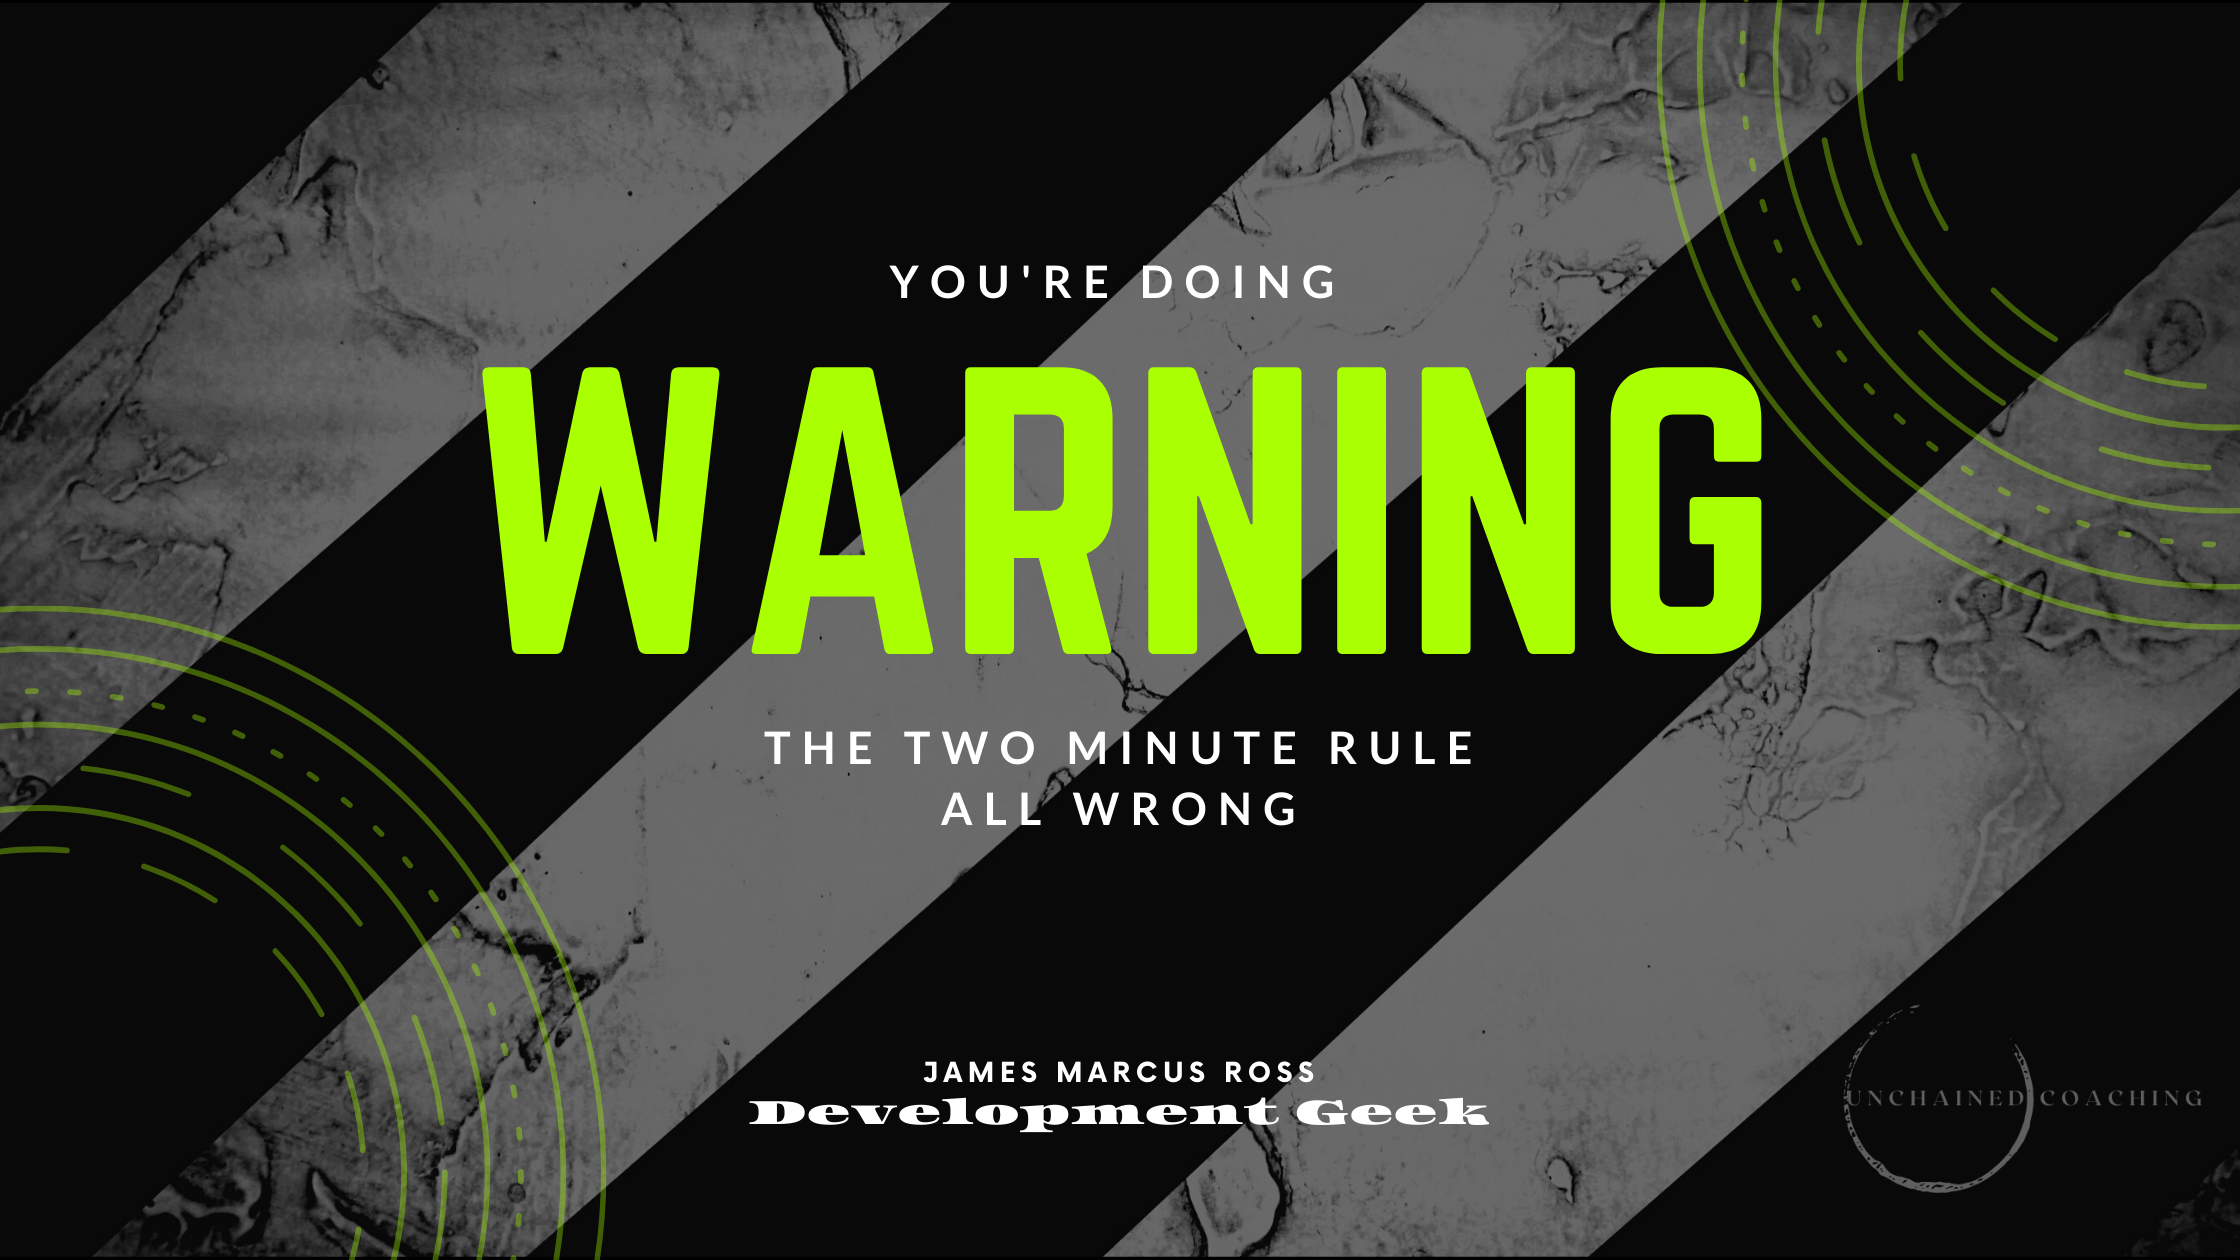 Warning : You're Doing The Two Minute Rule All Wrong!